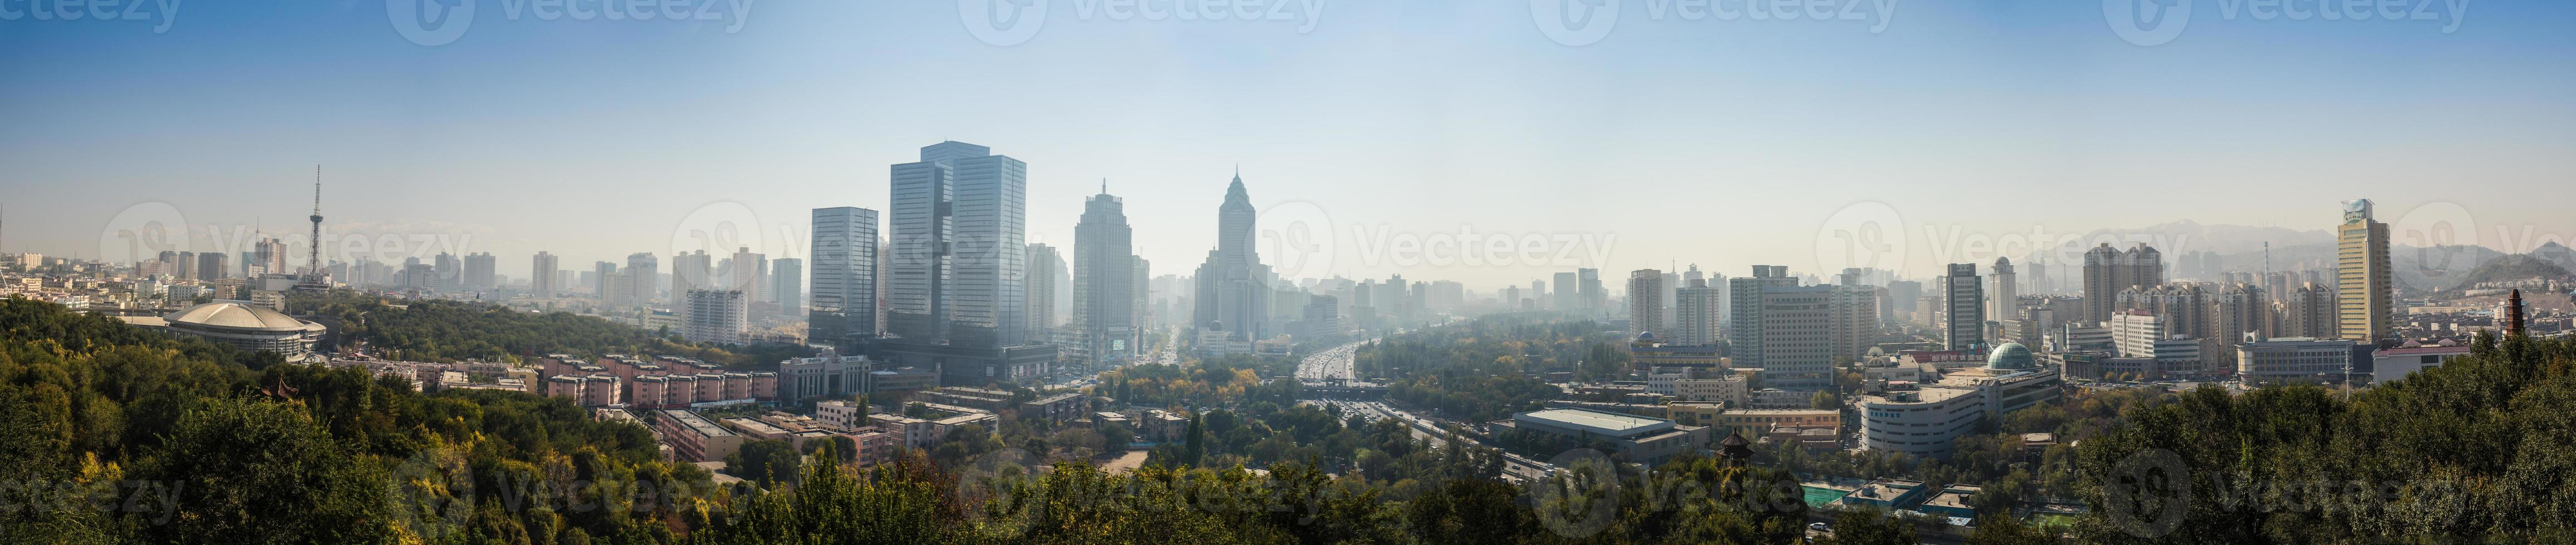 View of the big modern city photo